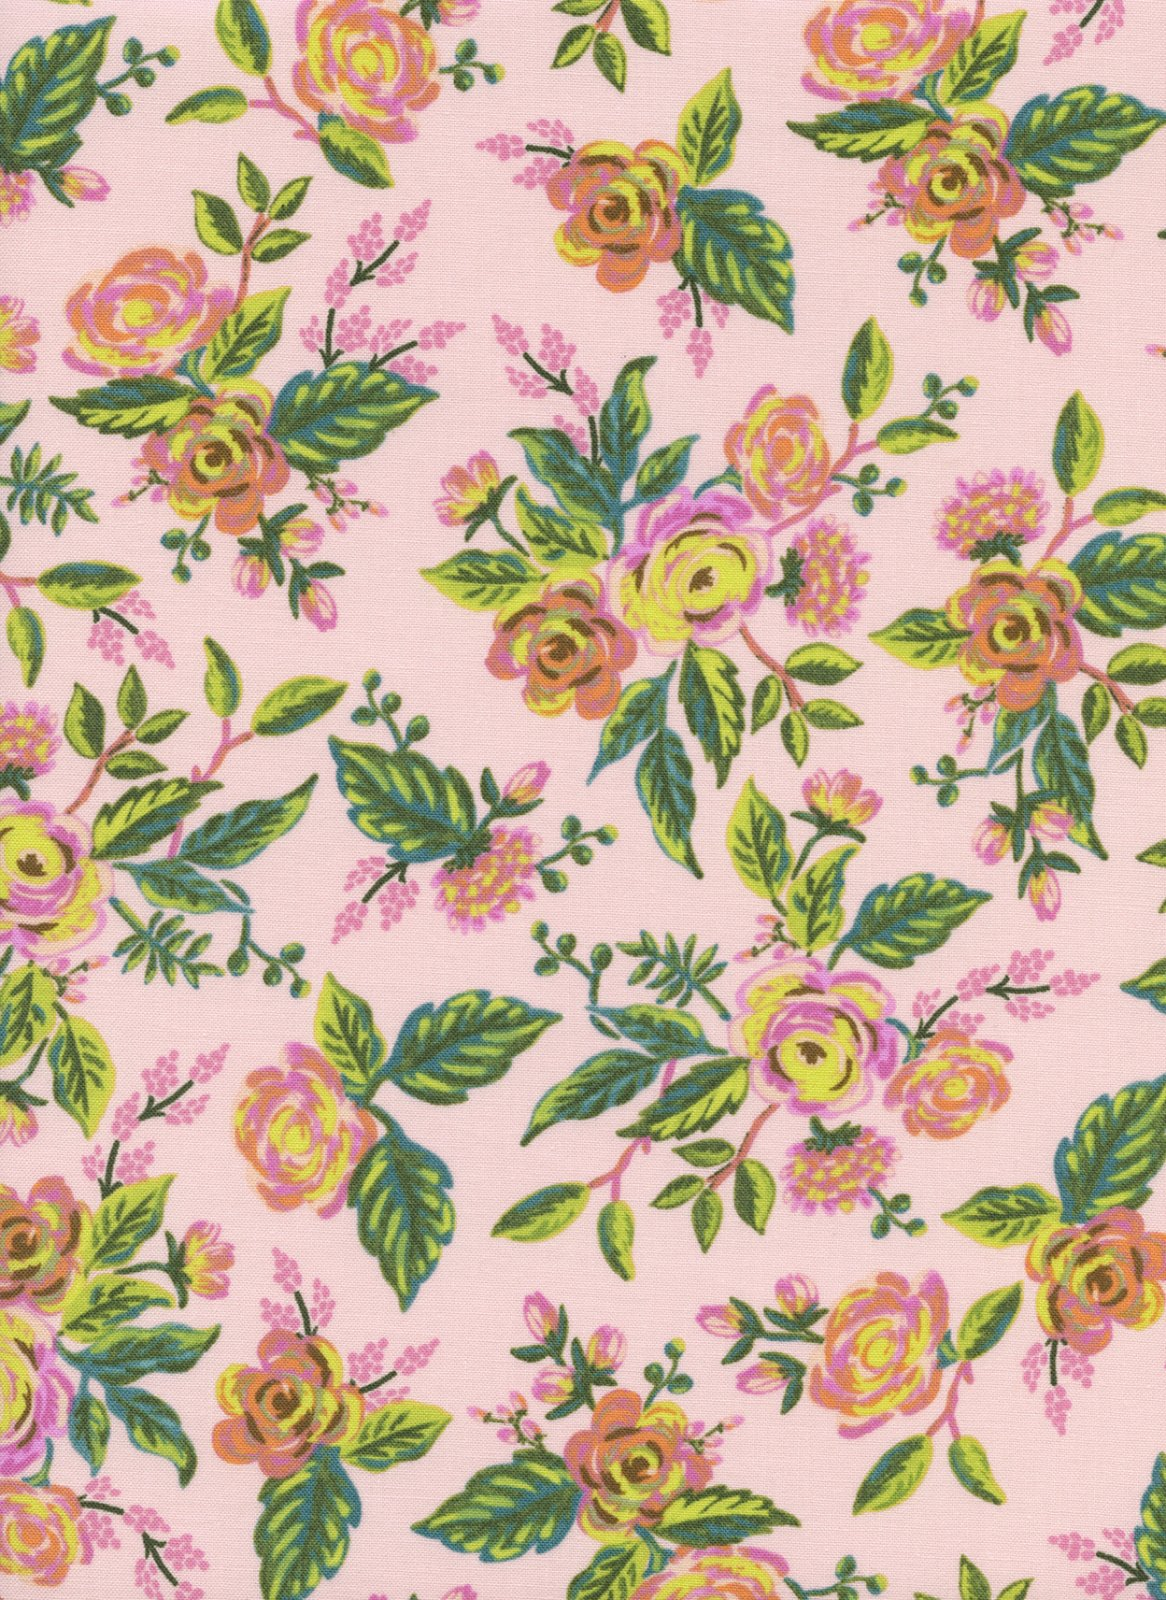 AB8030-002 Menagerie Rifle Paper Co Pink Rose